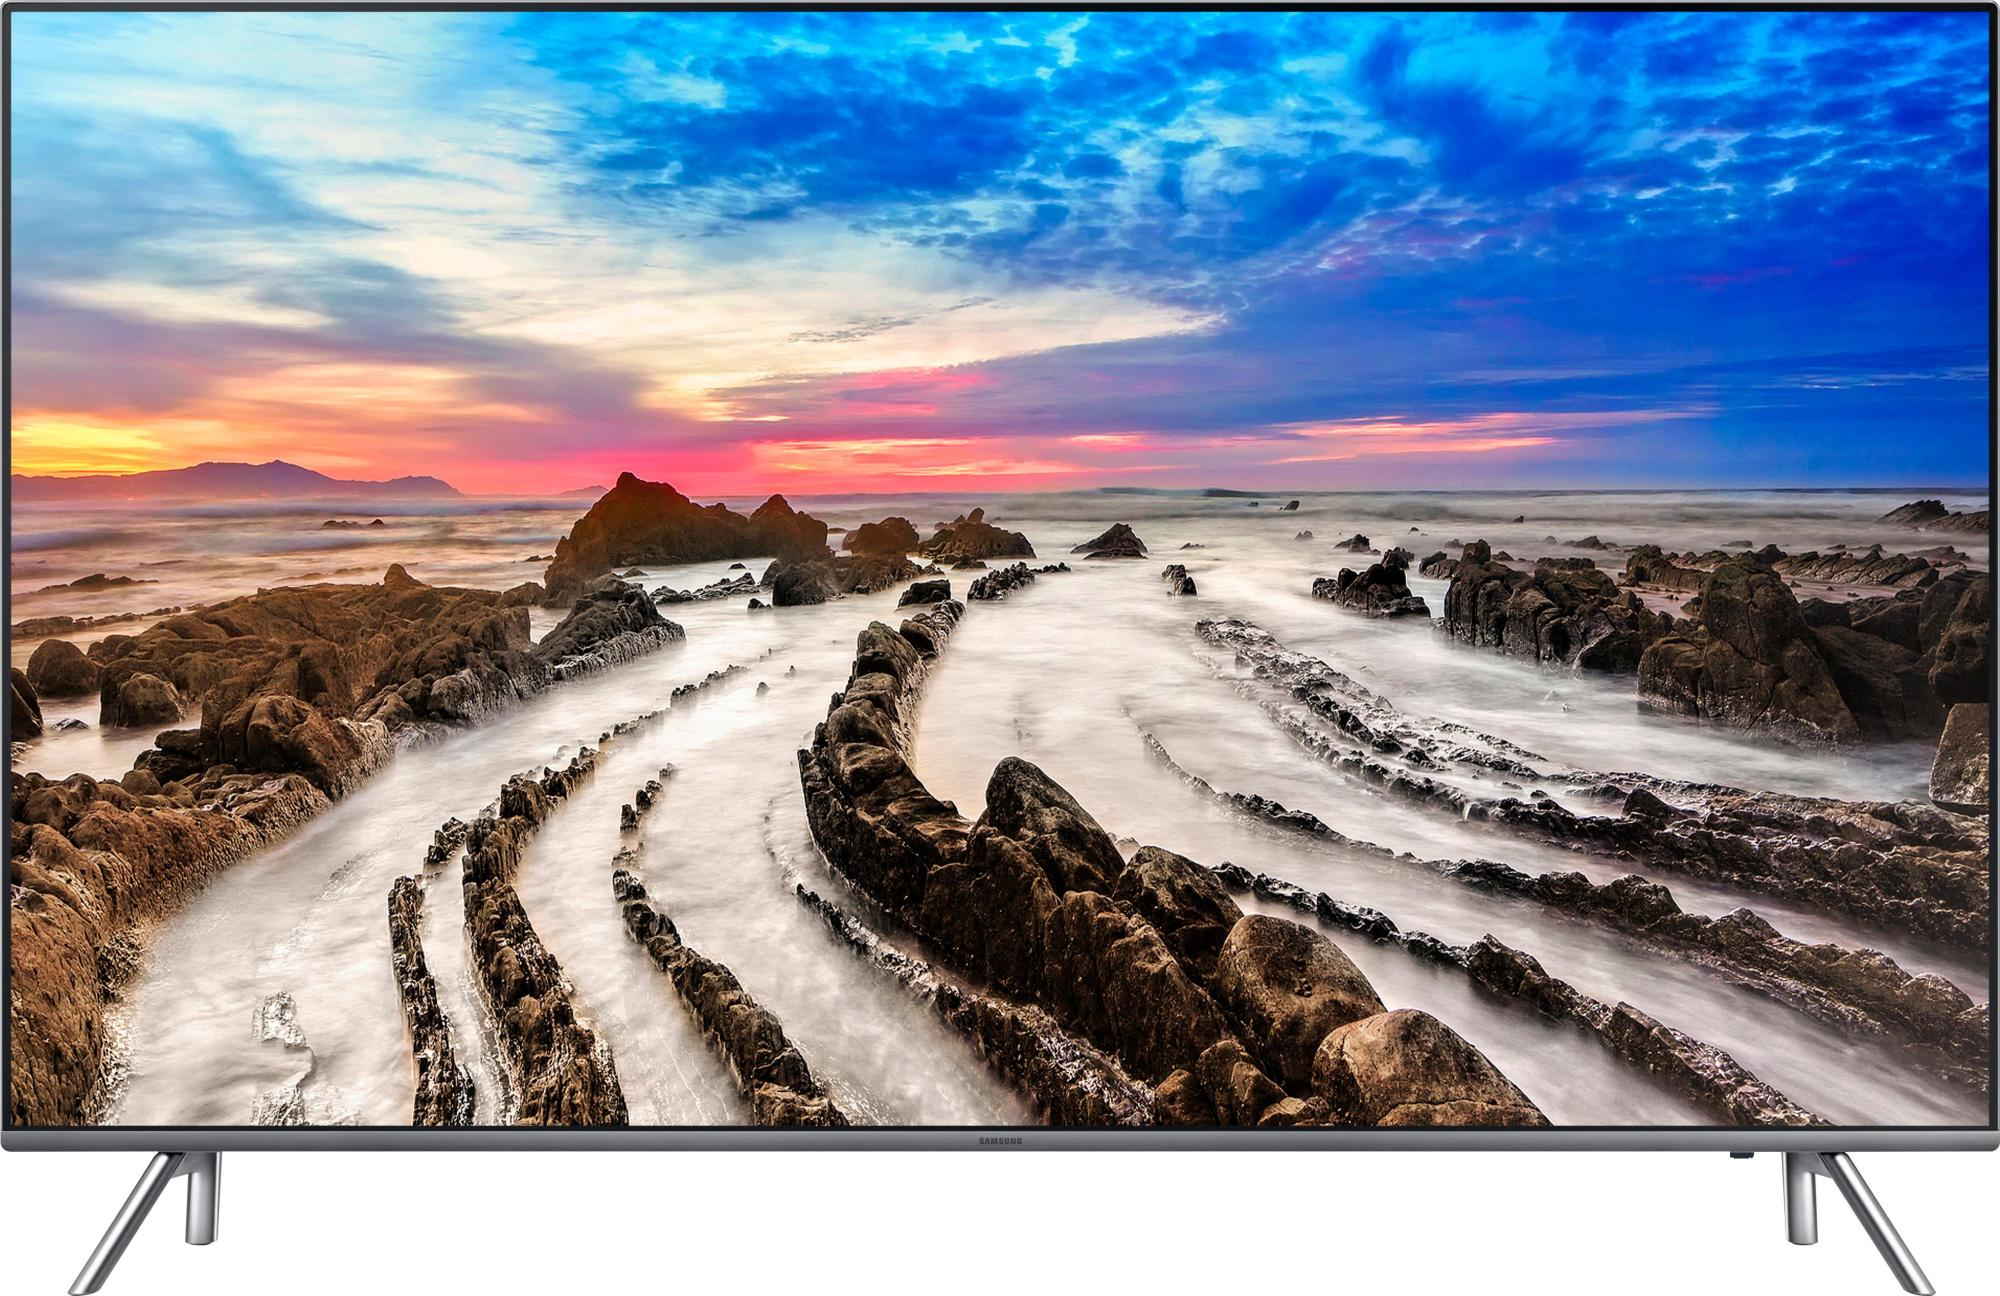 hight resolution of samsung 49 class led mu8000 series 2160p smart 4k uhd tv with hdr black un49mu8000fxza best buy